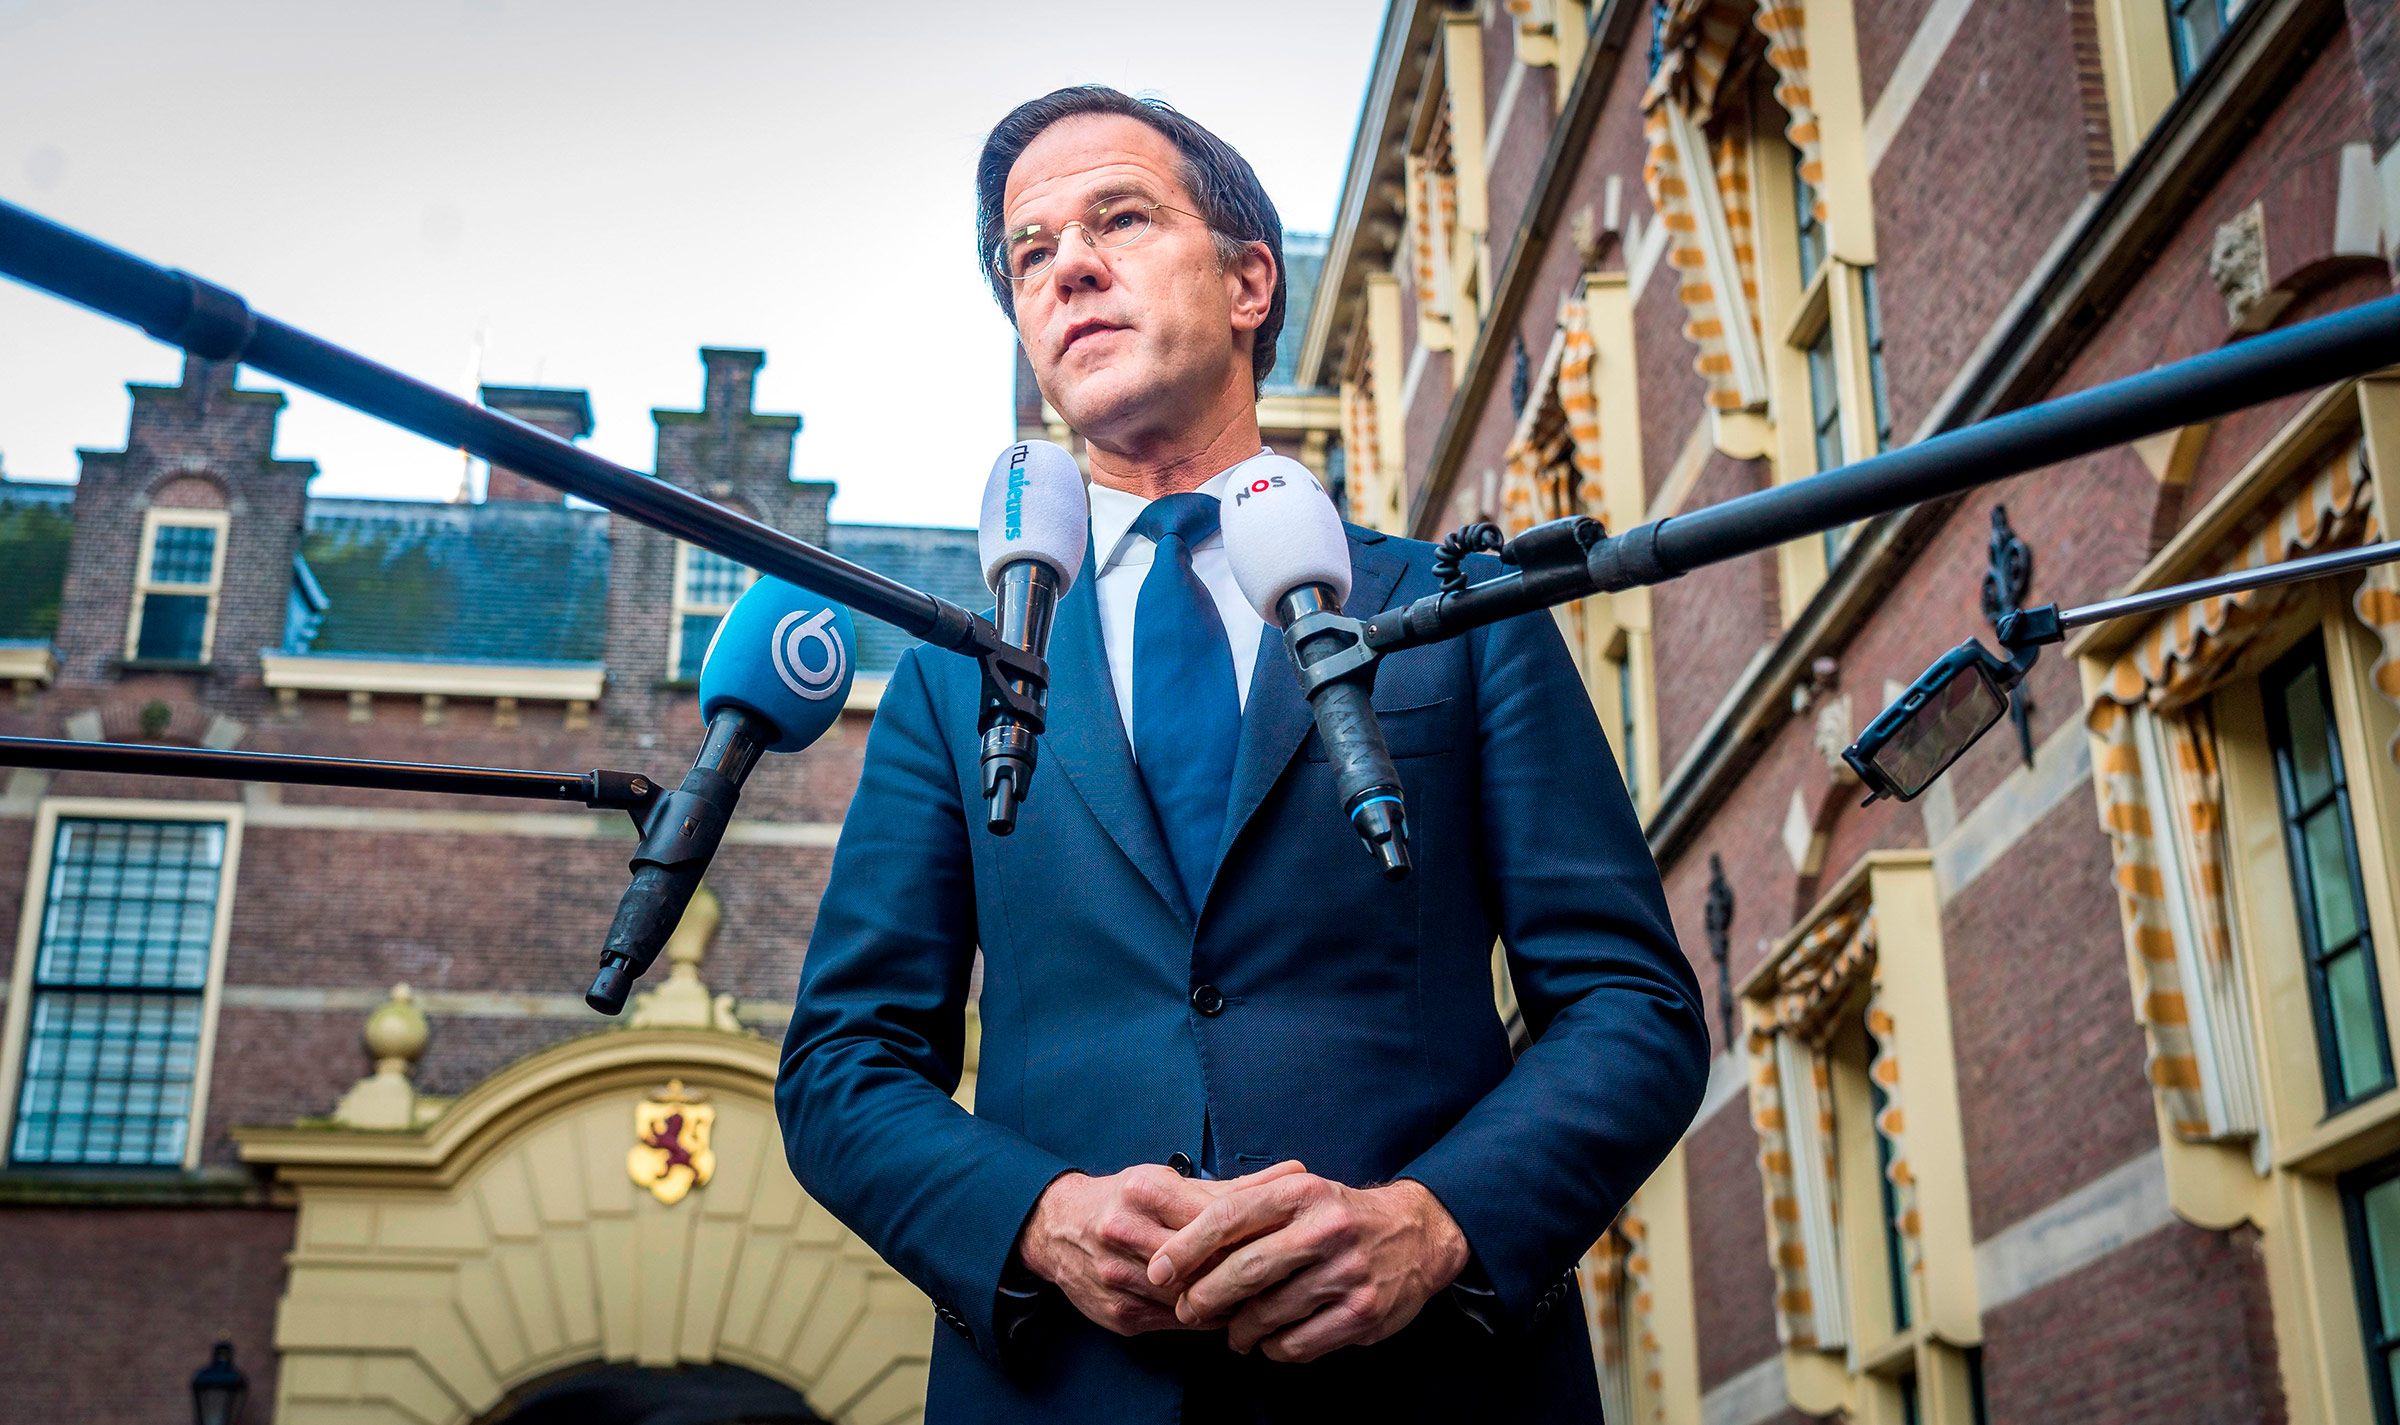 Dutch Prime Minister Mark Rutte speaks to the press in the Hague, Netherlands, on January 25.